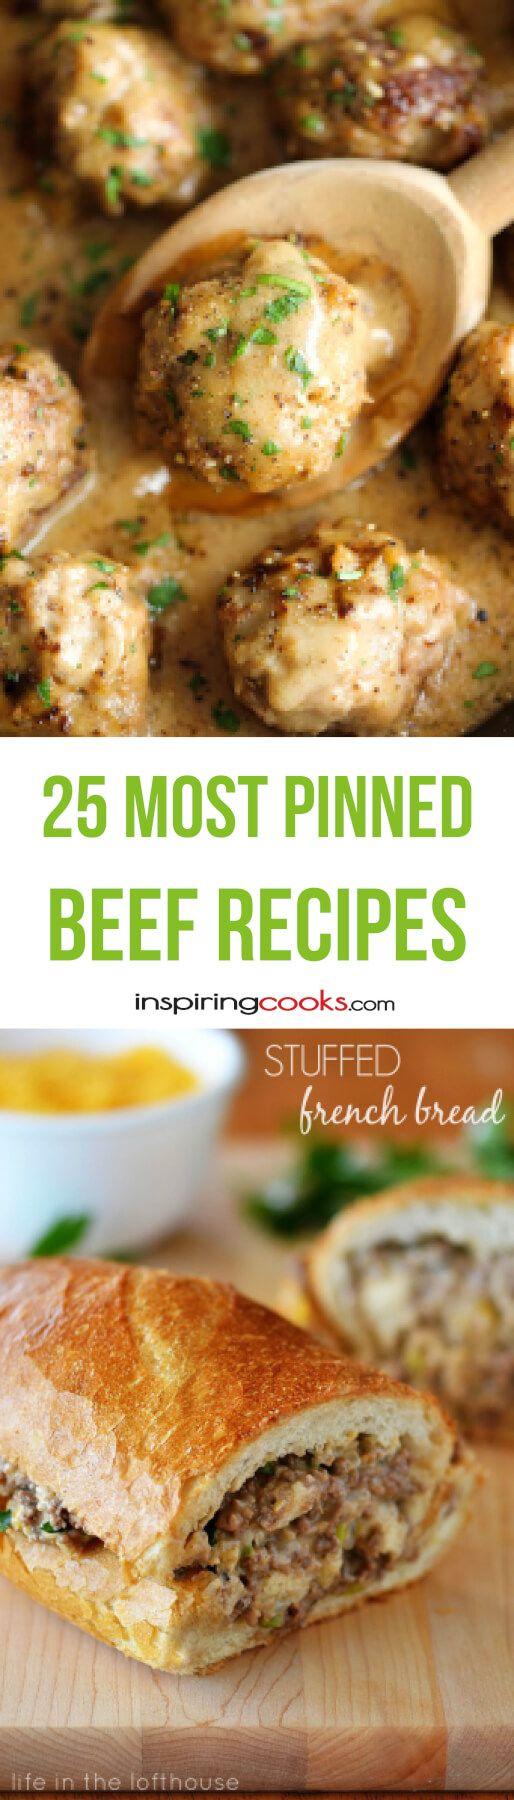 So here ya have it……….the most pinned beef recipes on Pinterest! Oh ya, you always wondered what the most pinned beef recipes on pinterest are haven't you? I sure have, so I decided to find out for myself and I'm sharing what I found with you. There are some great recipes here. Some of these...Read More